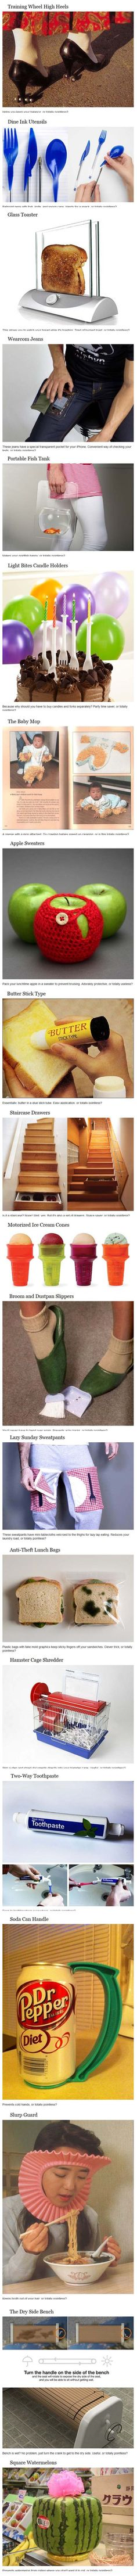 20 Clever and Bizarre Inventions | Boo Fckm HooBoo Fckm Hoo